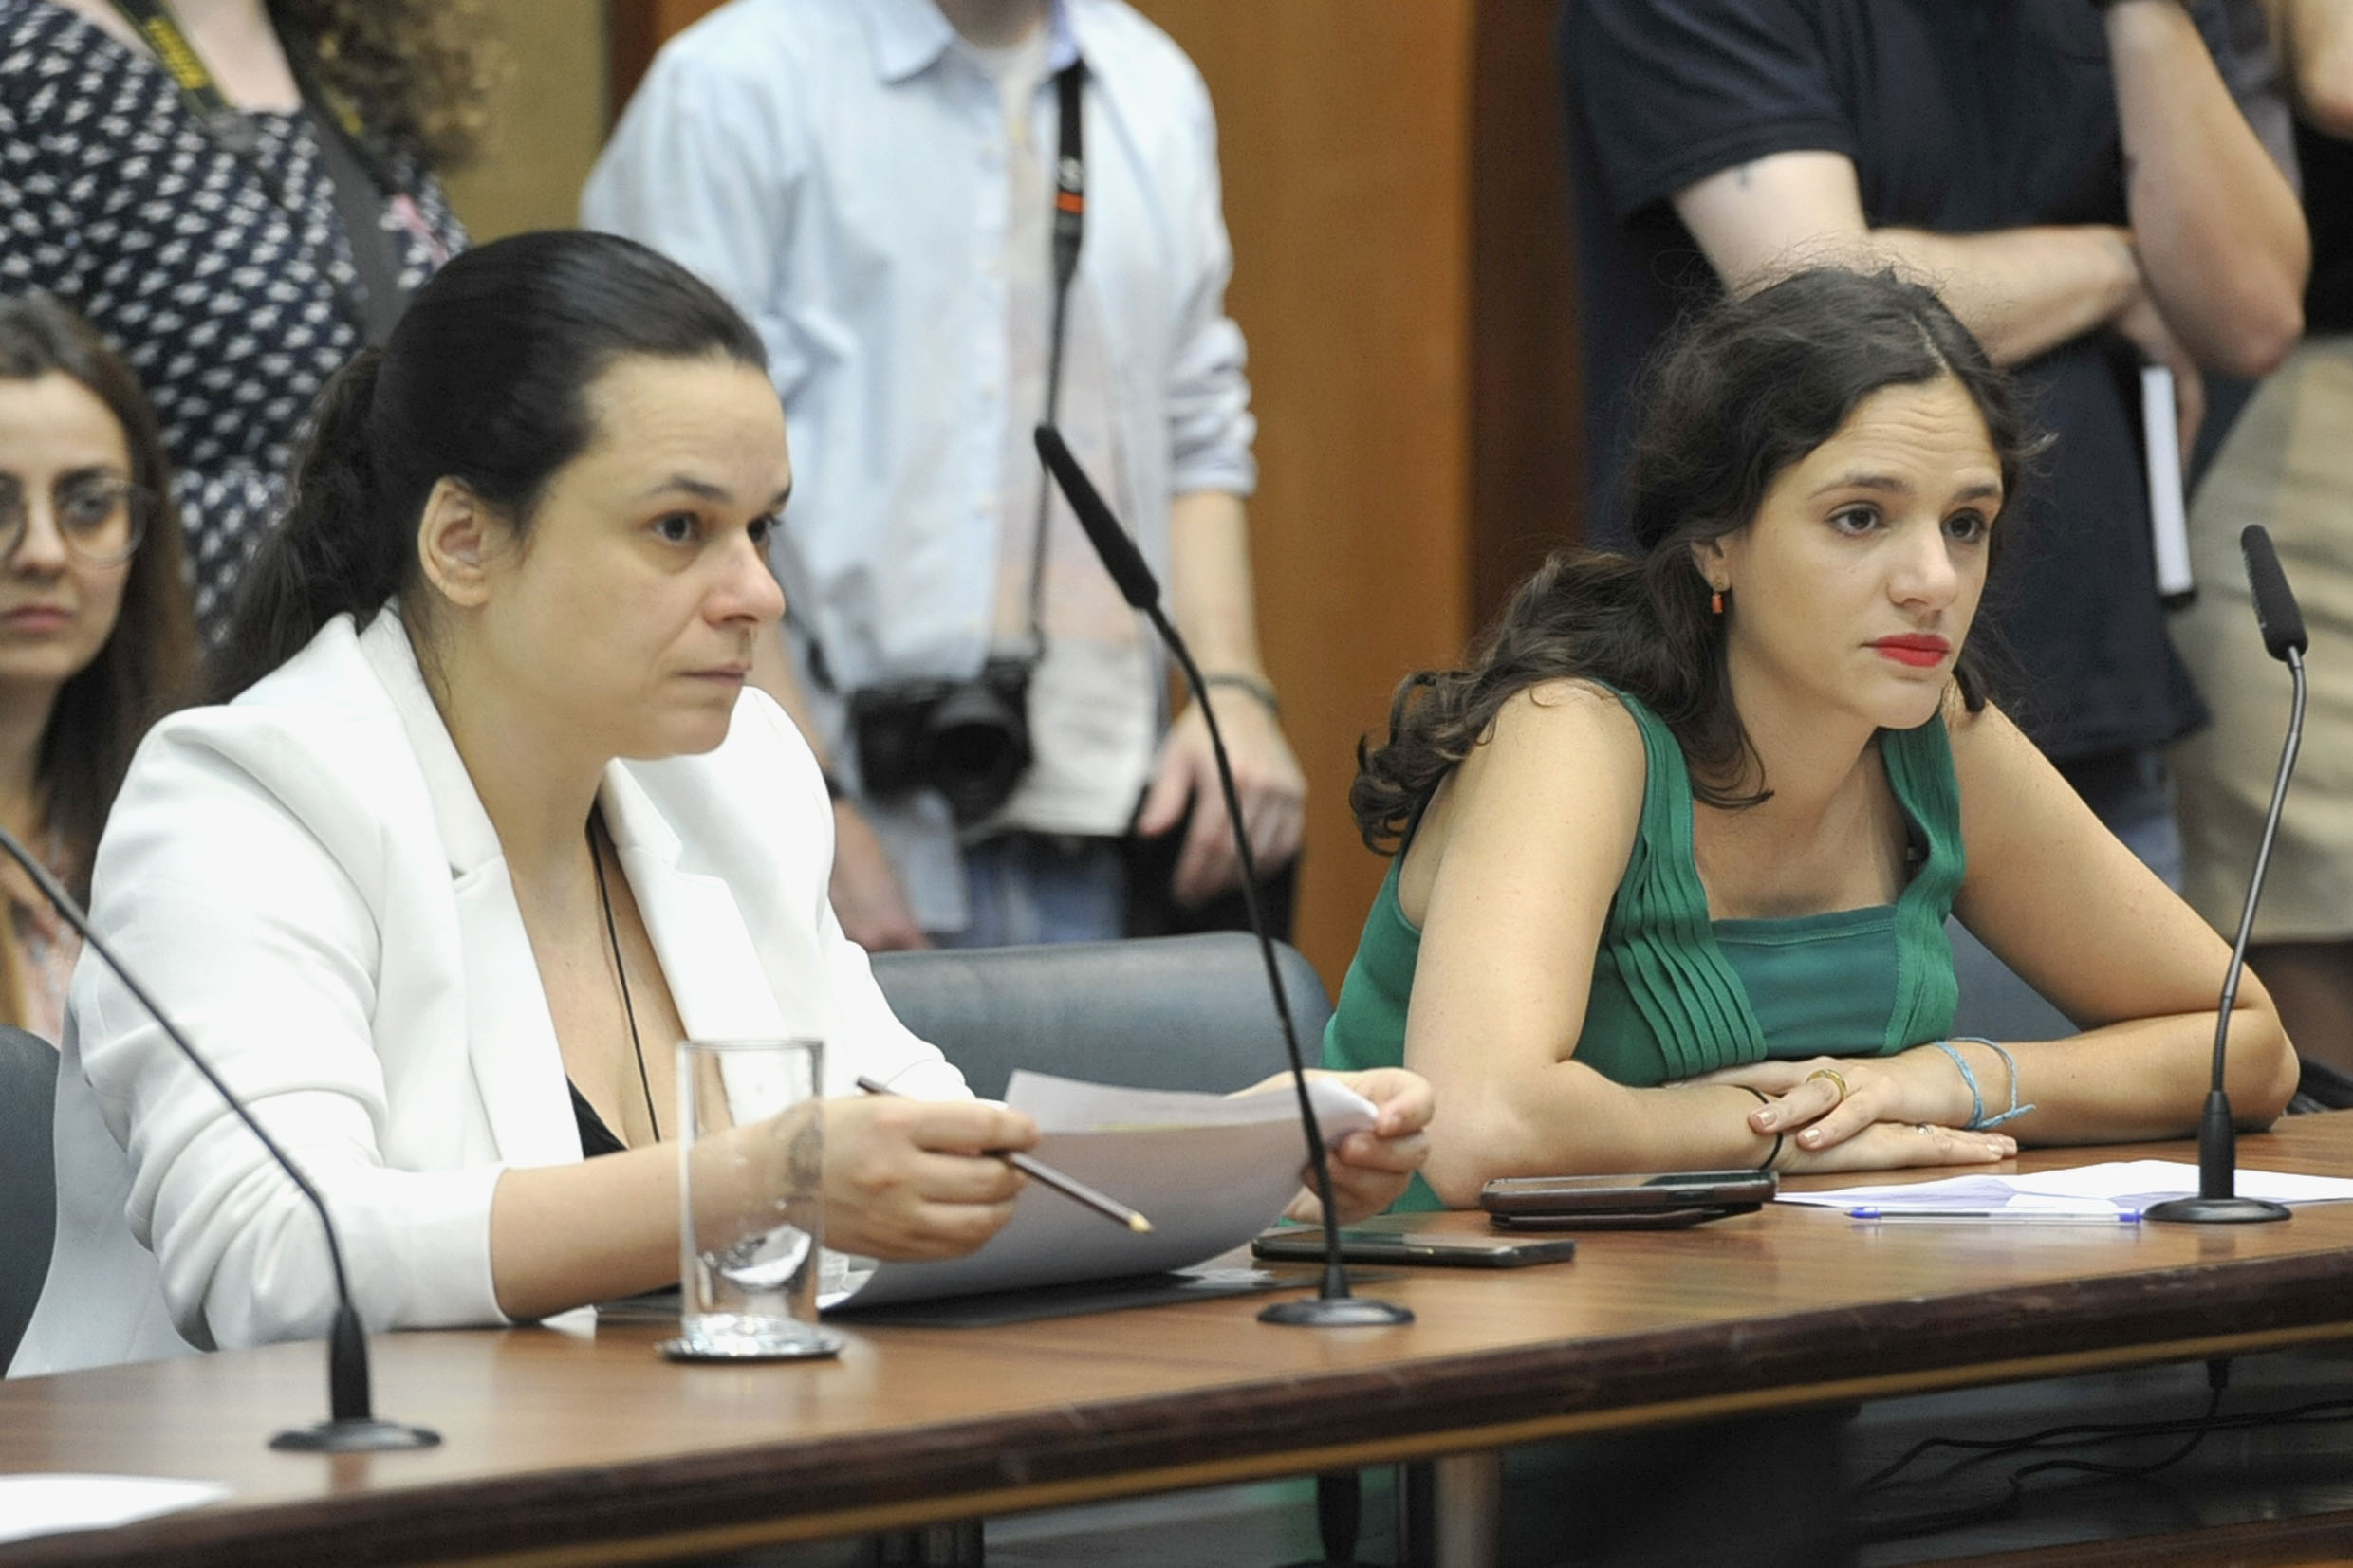 Janaina Paschoal e Marina Helou<a style='float:right' href='https://www3.al.sp.gov.br/repositorio/noticia/N-10-2019/fg240963.jpg' target=_blank><img src='/_img/material-file-download-white.png' width='14px' alt='Clique para baixar a imagem'></a>